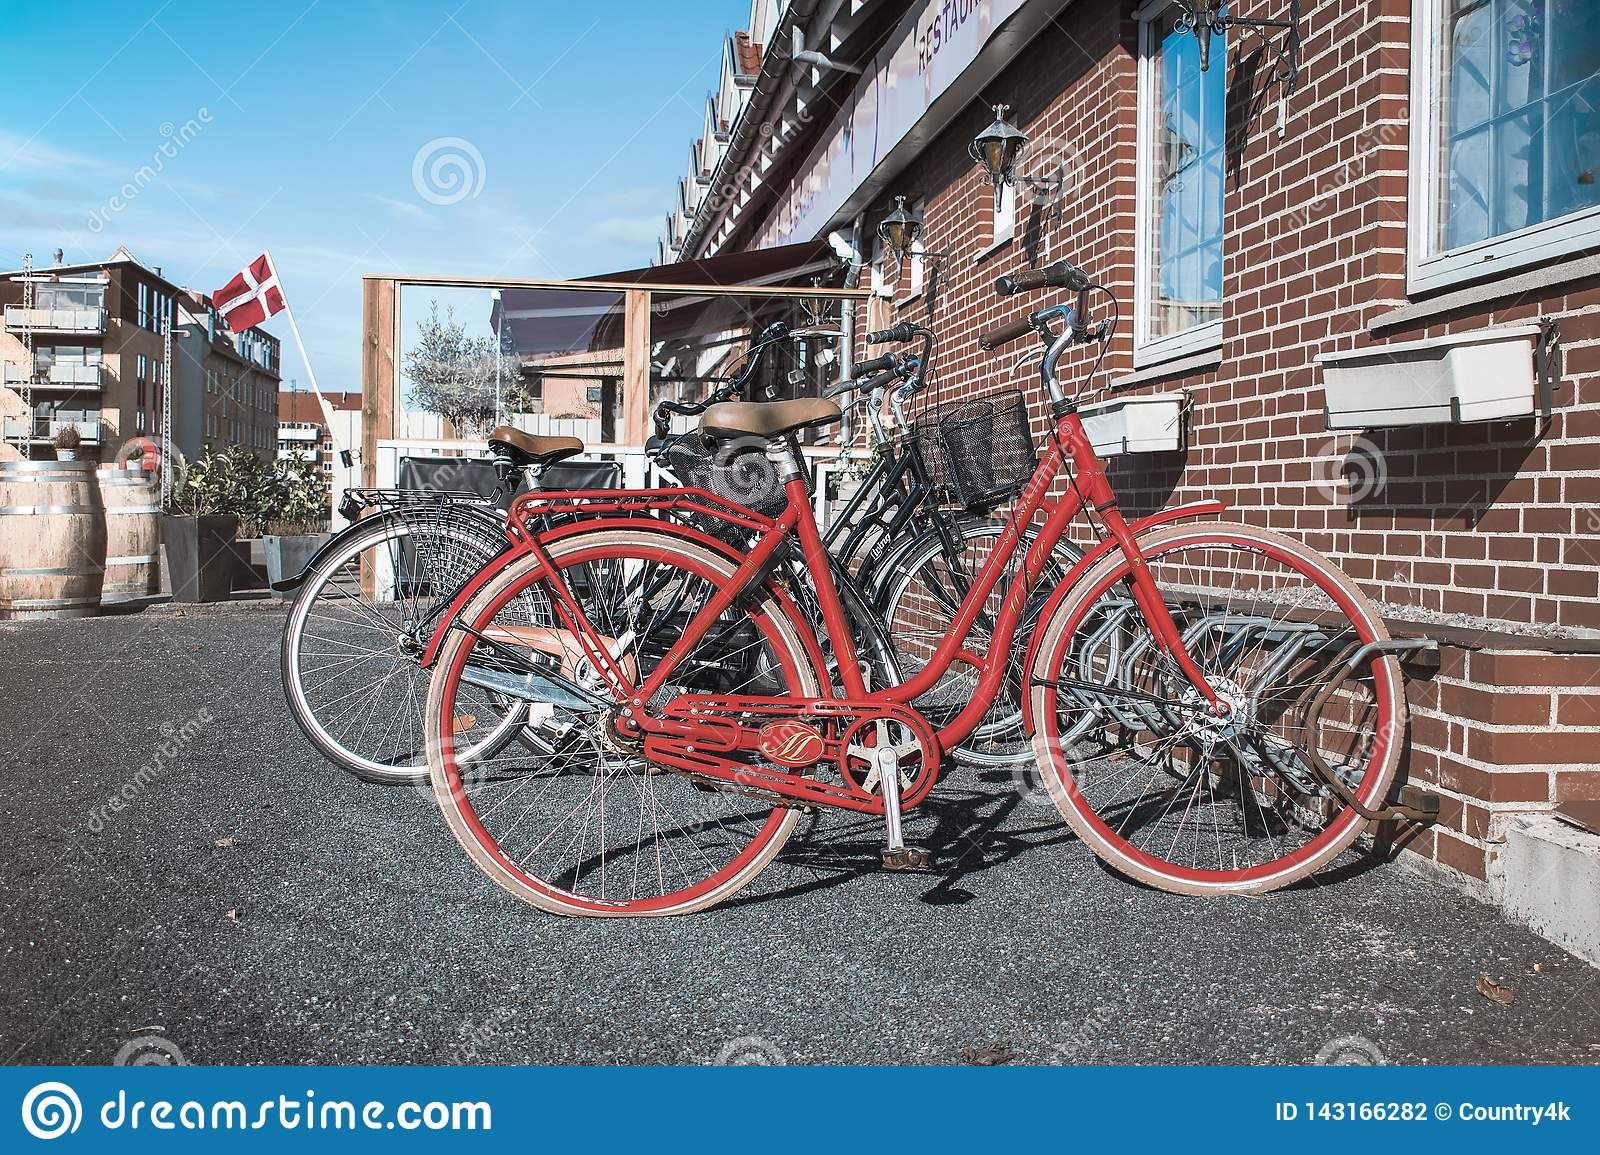 Retro red bicycle on the street near the cafe